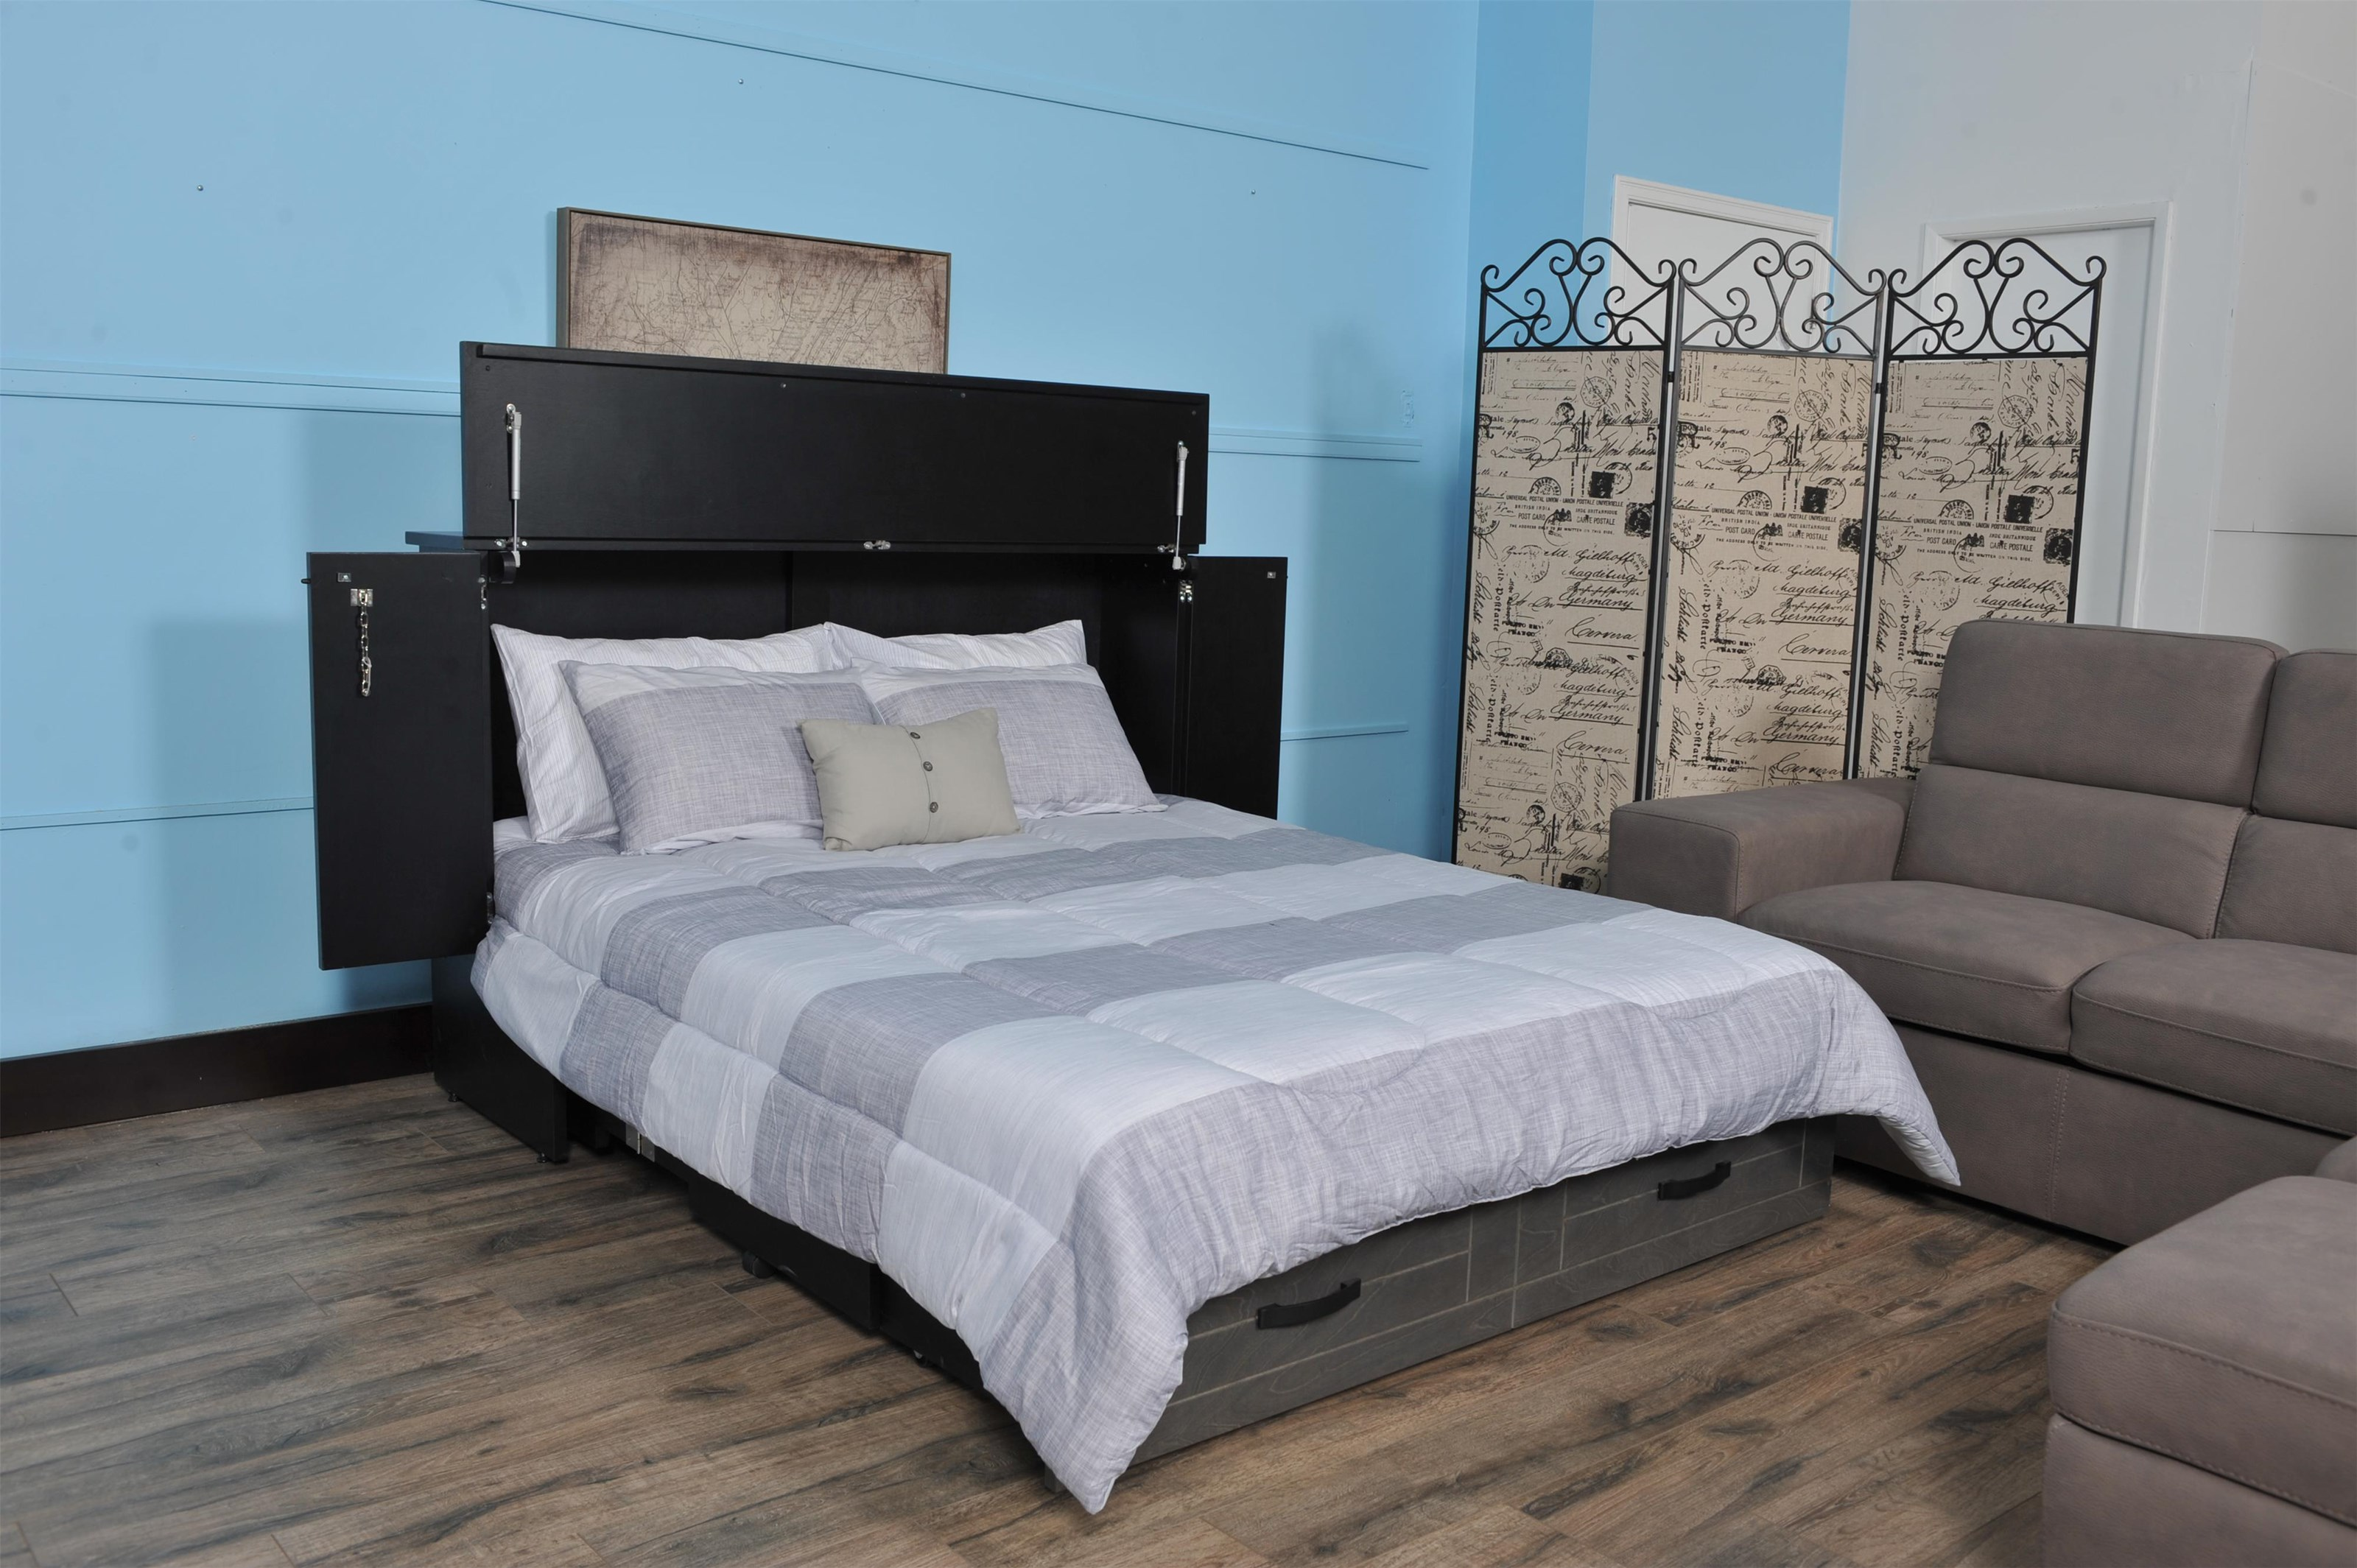 Aztec Queen Aztec Premium Cabinet Bed by CabinetBed at Rife's Home Furniture